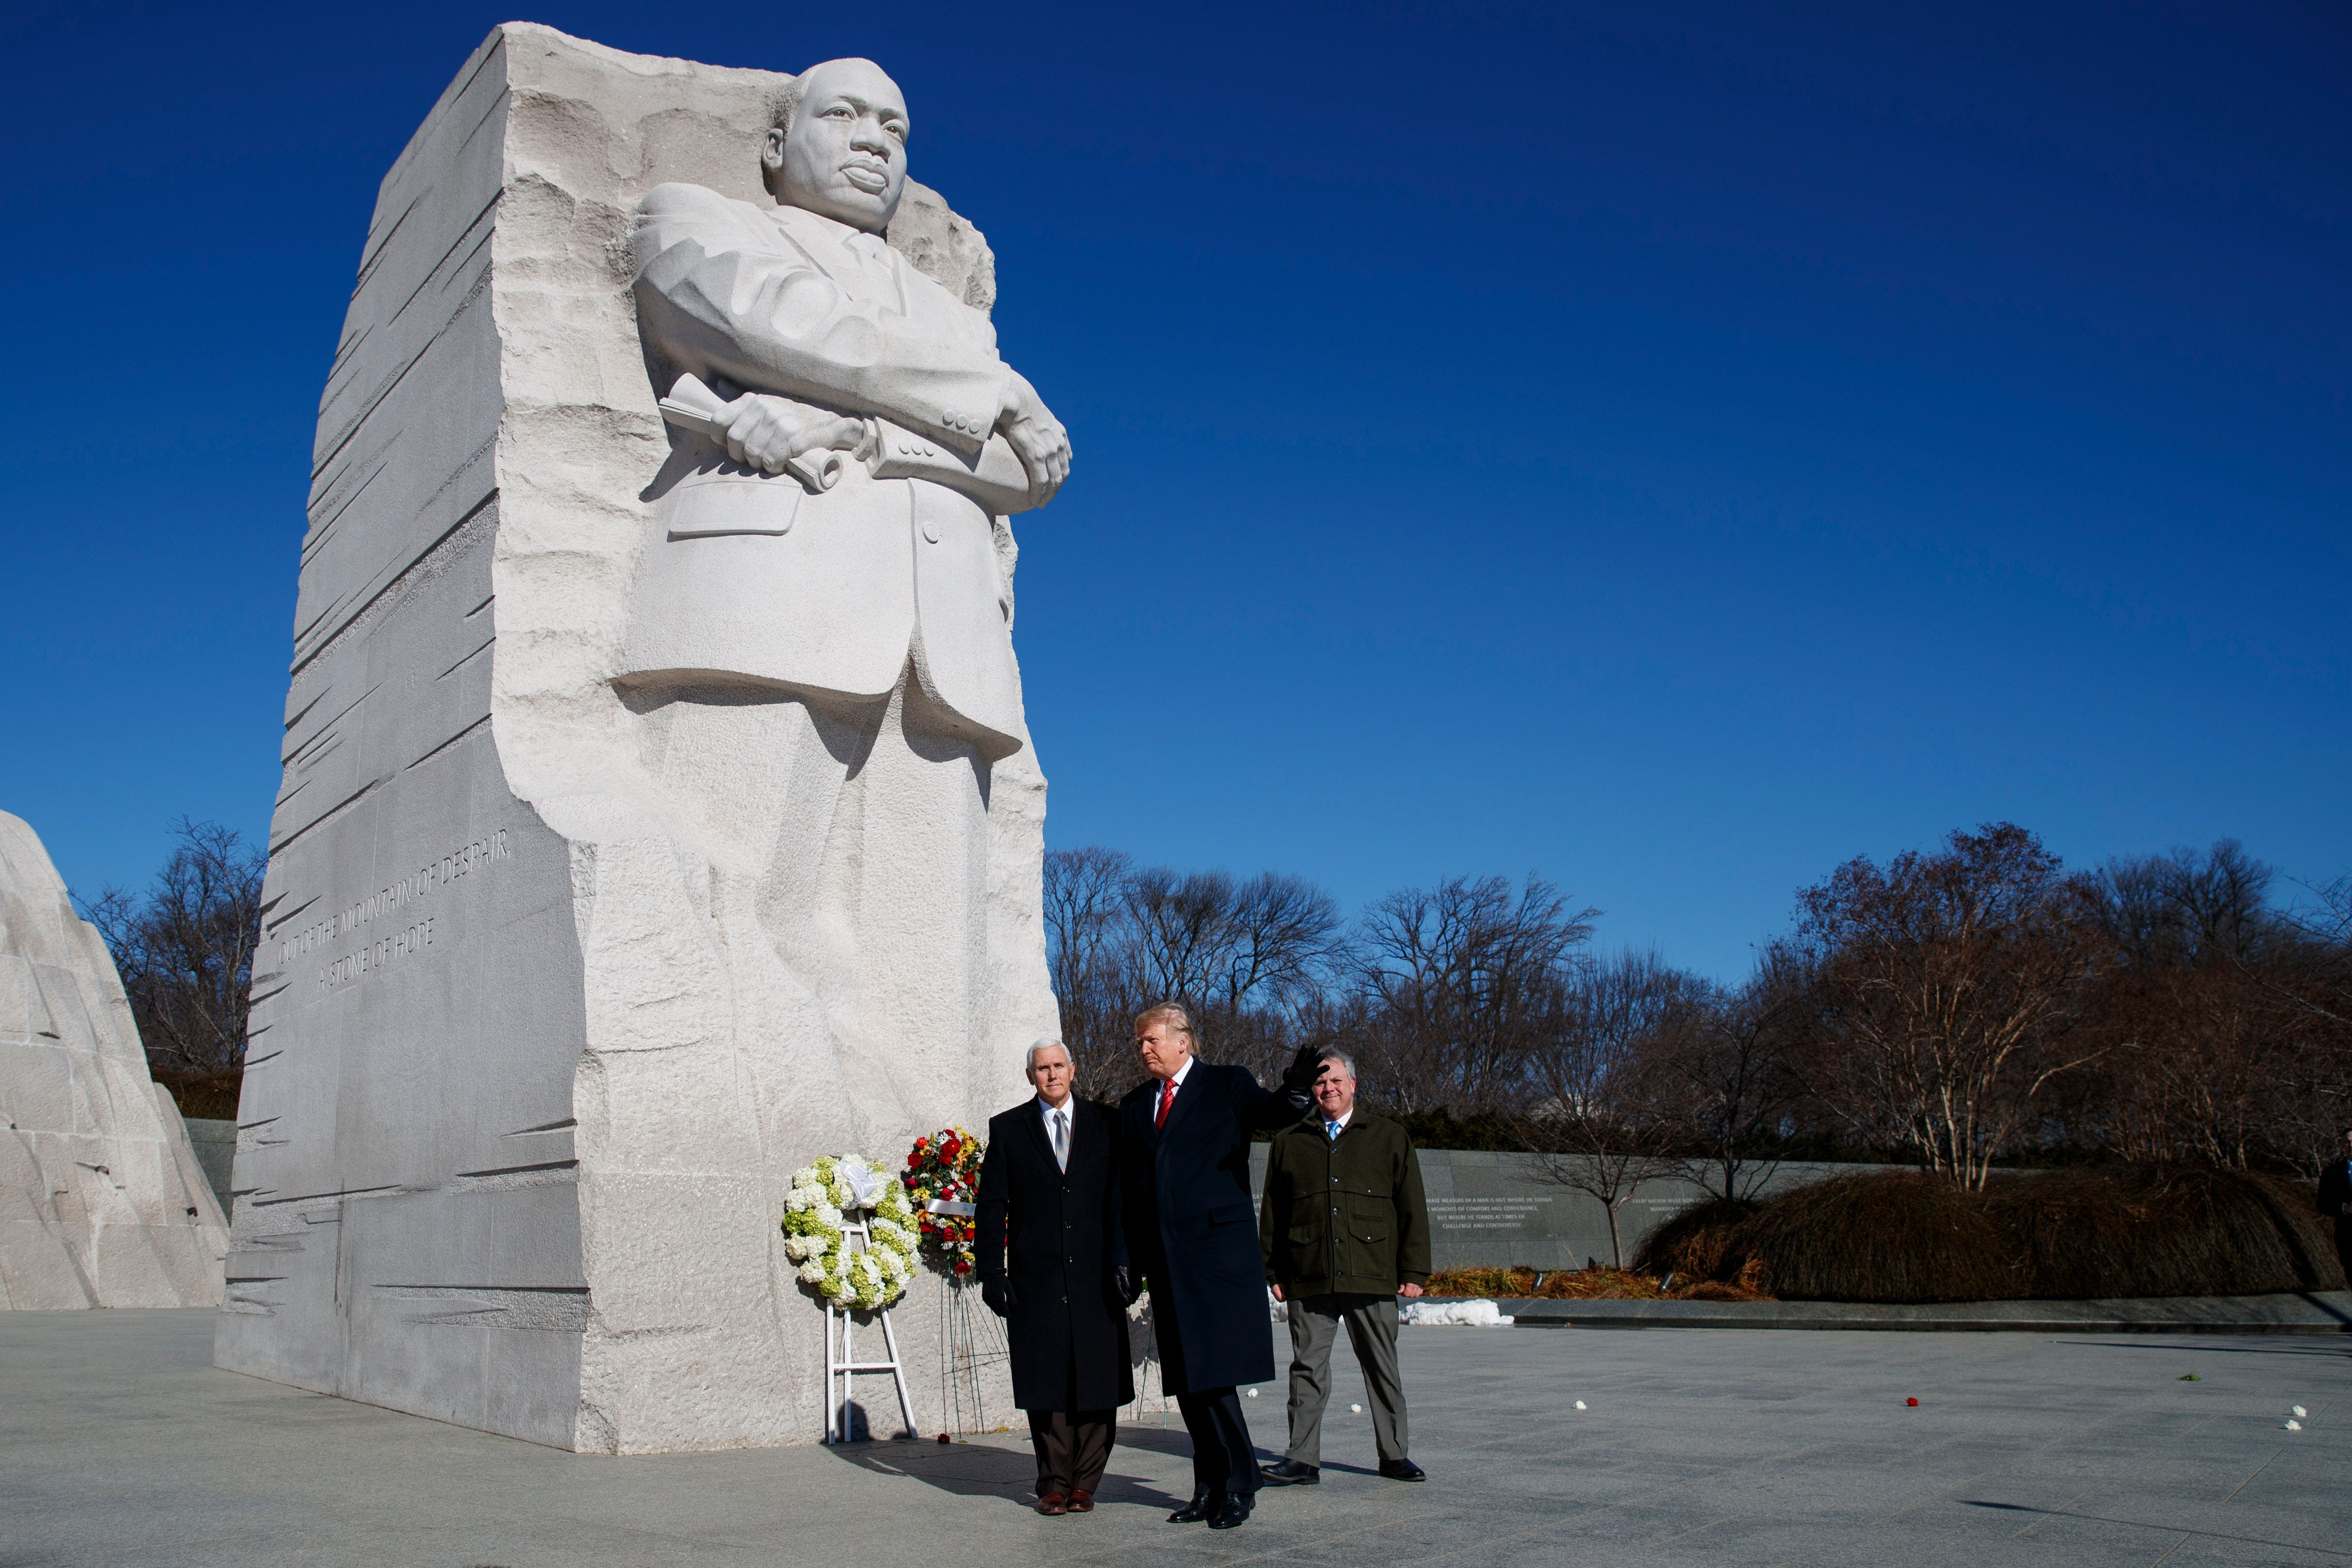 President Donald Trump, center, and Vice President Mike Pence, left, walk off after visiting the Martin Luther King Jr. Memorial, Monday, Jan. 21, 2019, in Washington. (AP Photo/ Evan Vucci)